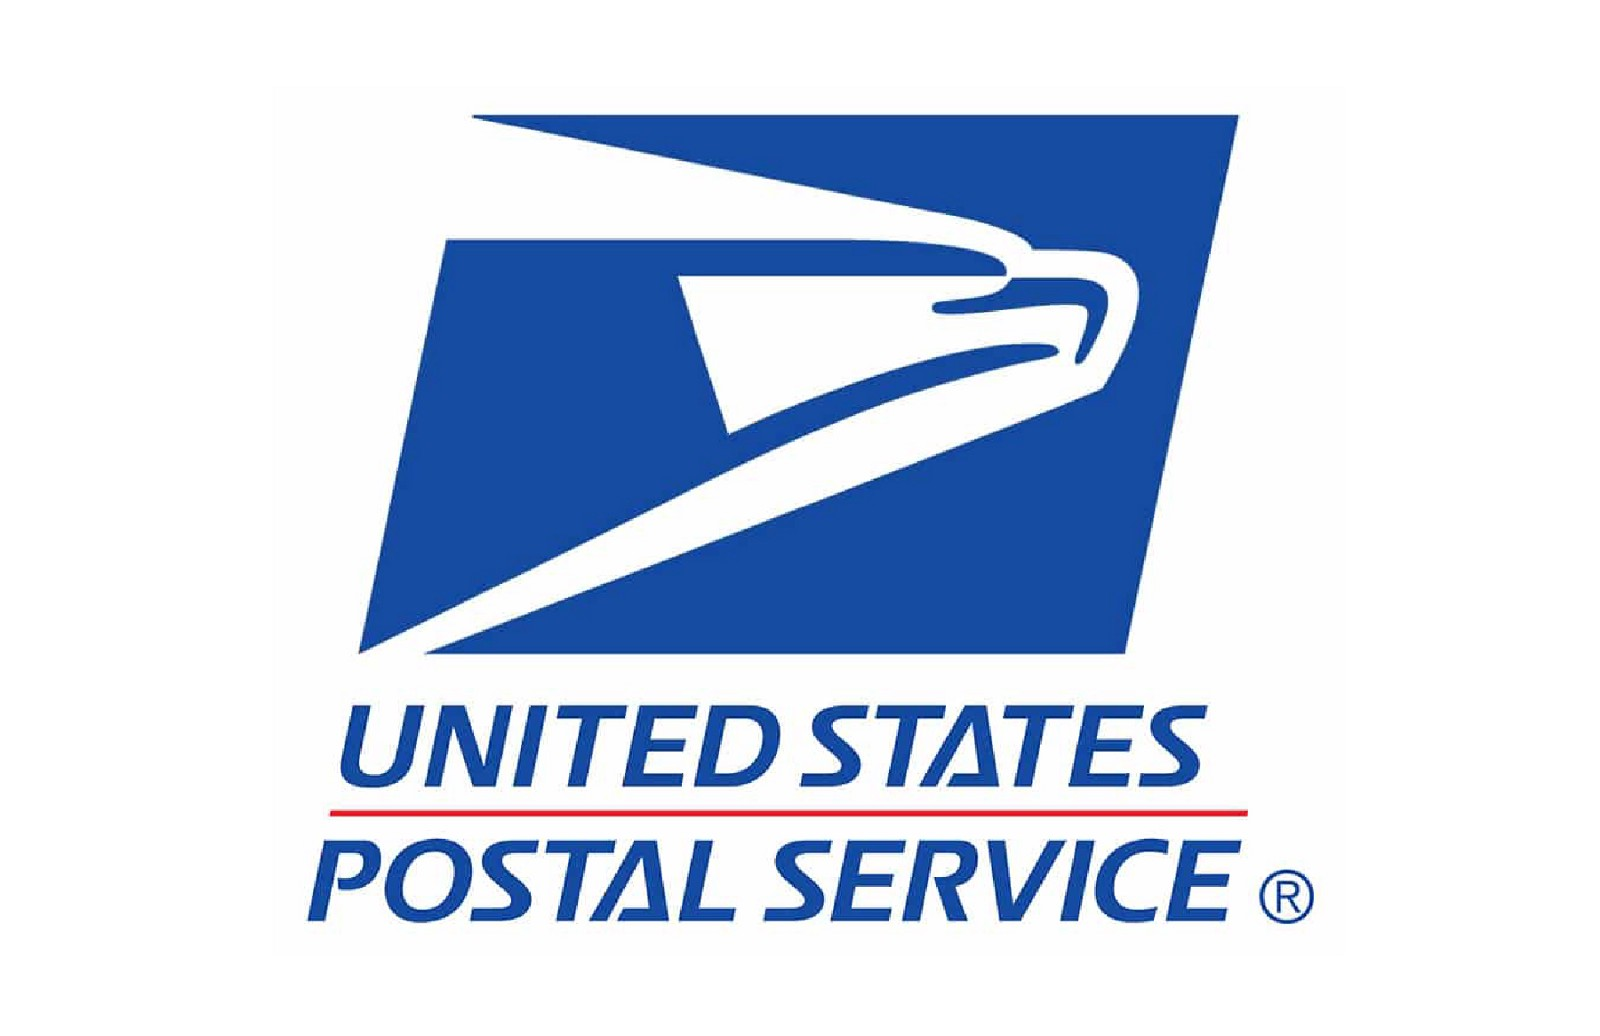 USPS leadership organization